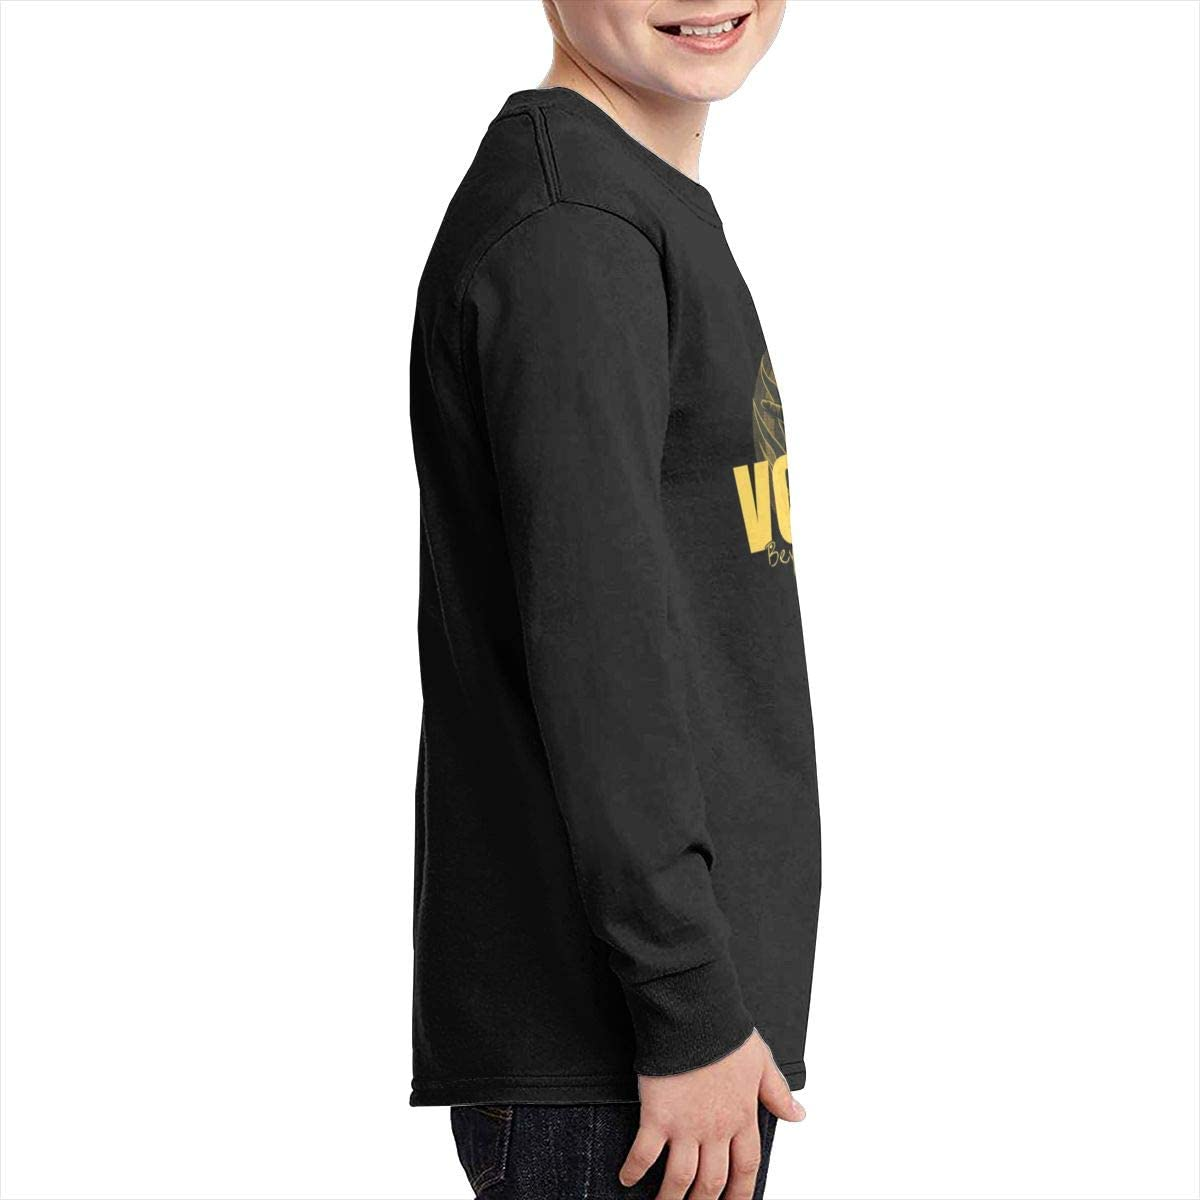 Volbeat Boys Fashion Classic Long Sleeve T-Shirt Boy Long Sleeve Cotton Round Neck T-Shirt